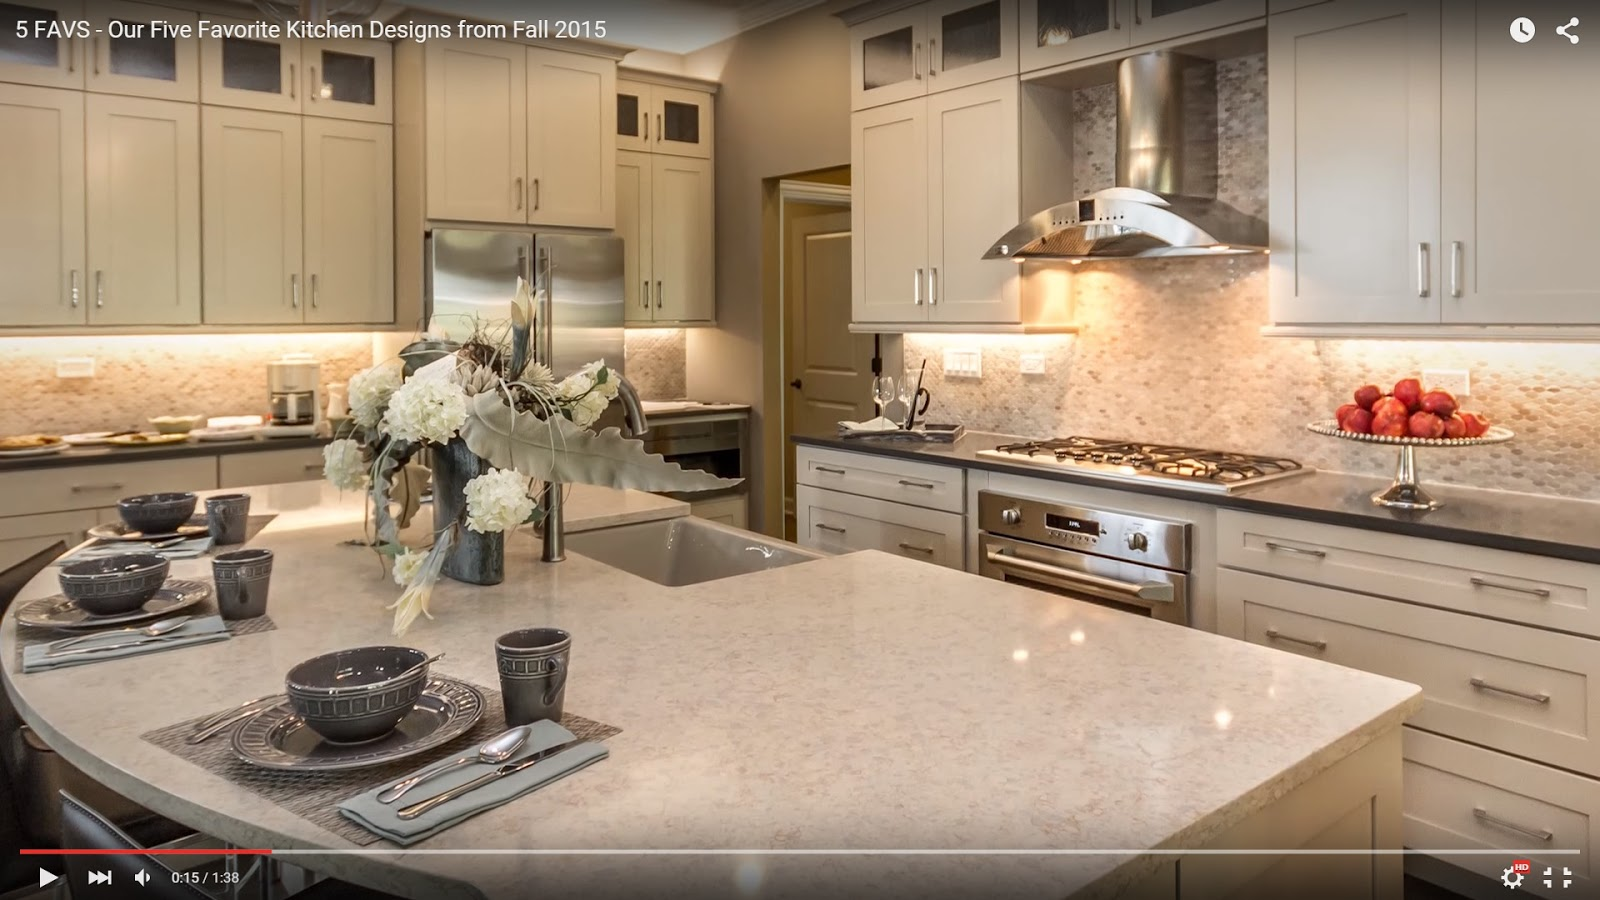 5 favs our five favorite kitchen designs from fall 2015 for Kitchen design ideas 2015